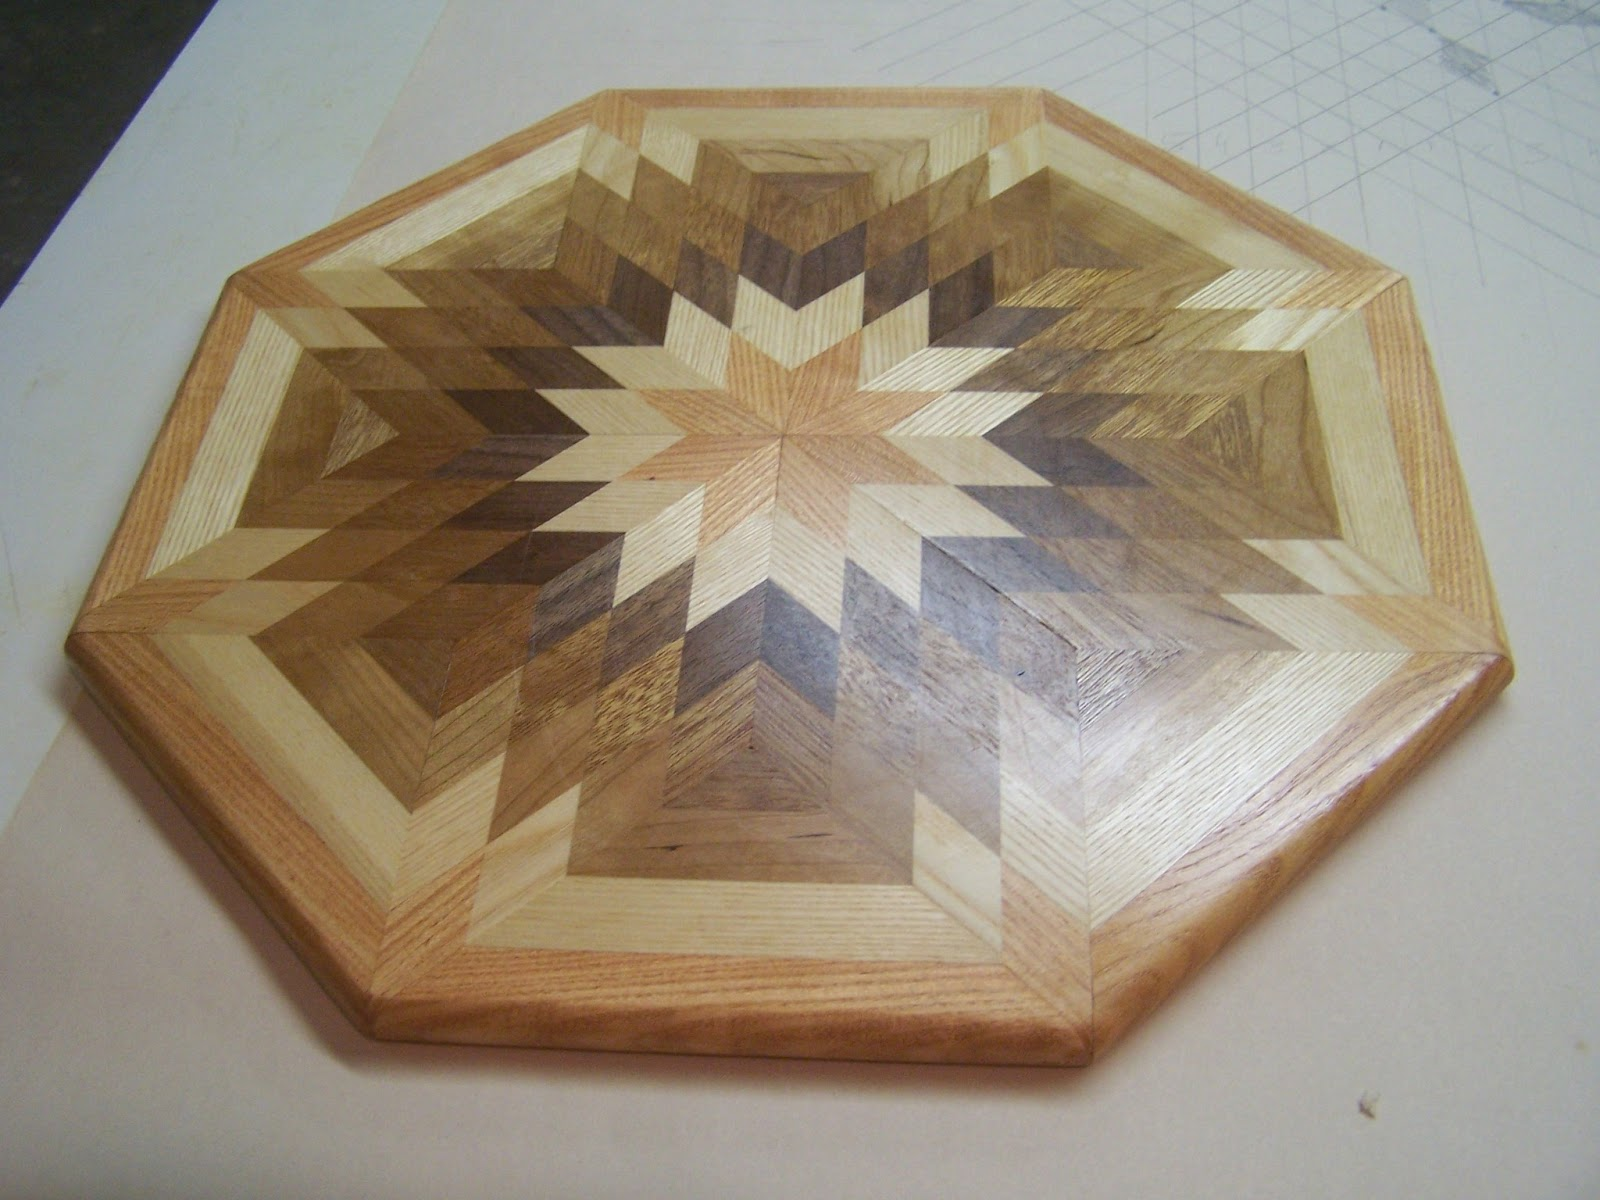 Wood art the multi generational method creating